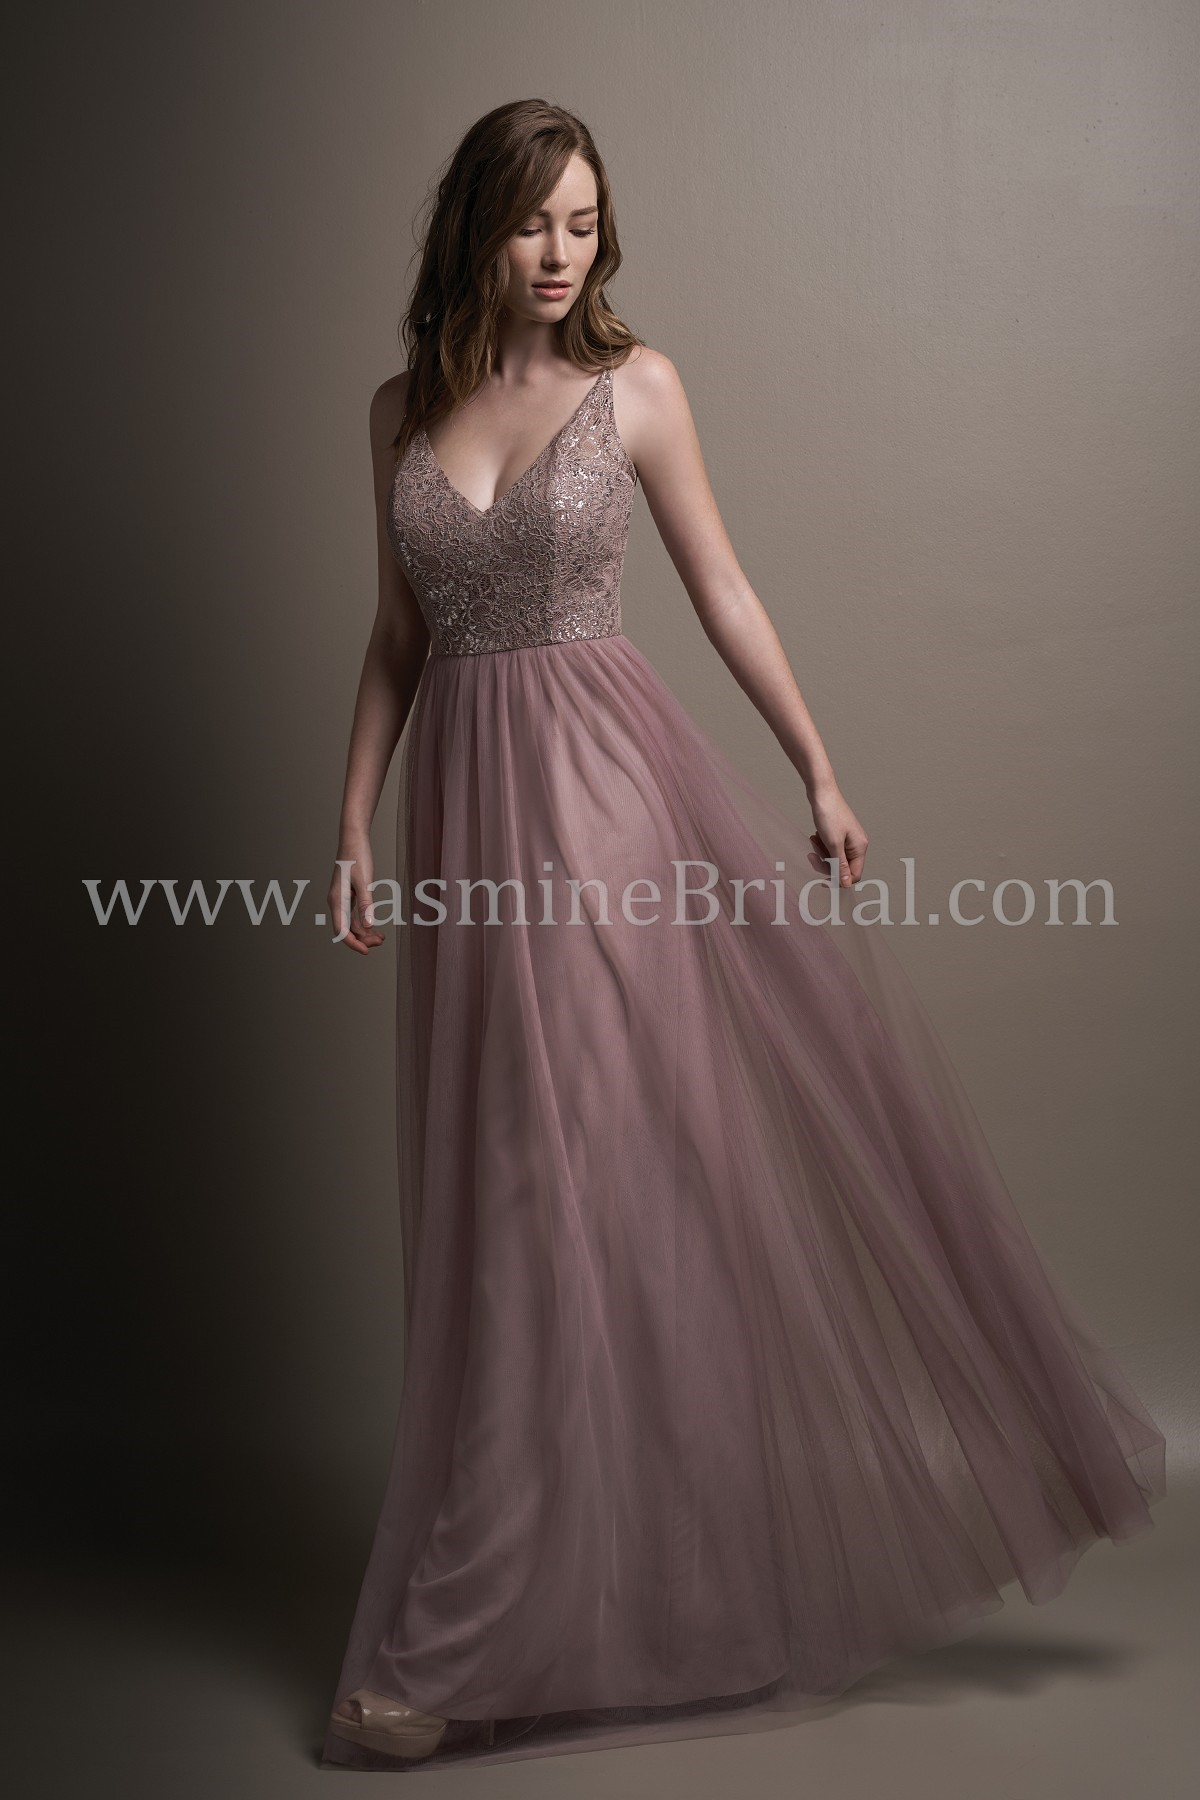 L194001 Long V Neck Metallic Lace Amp Soft Tulle Bridesmaid